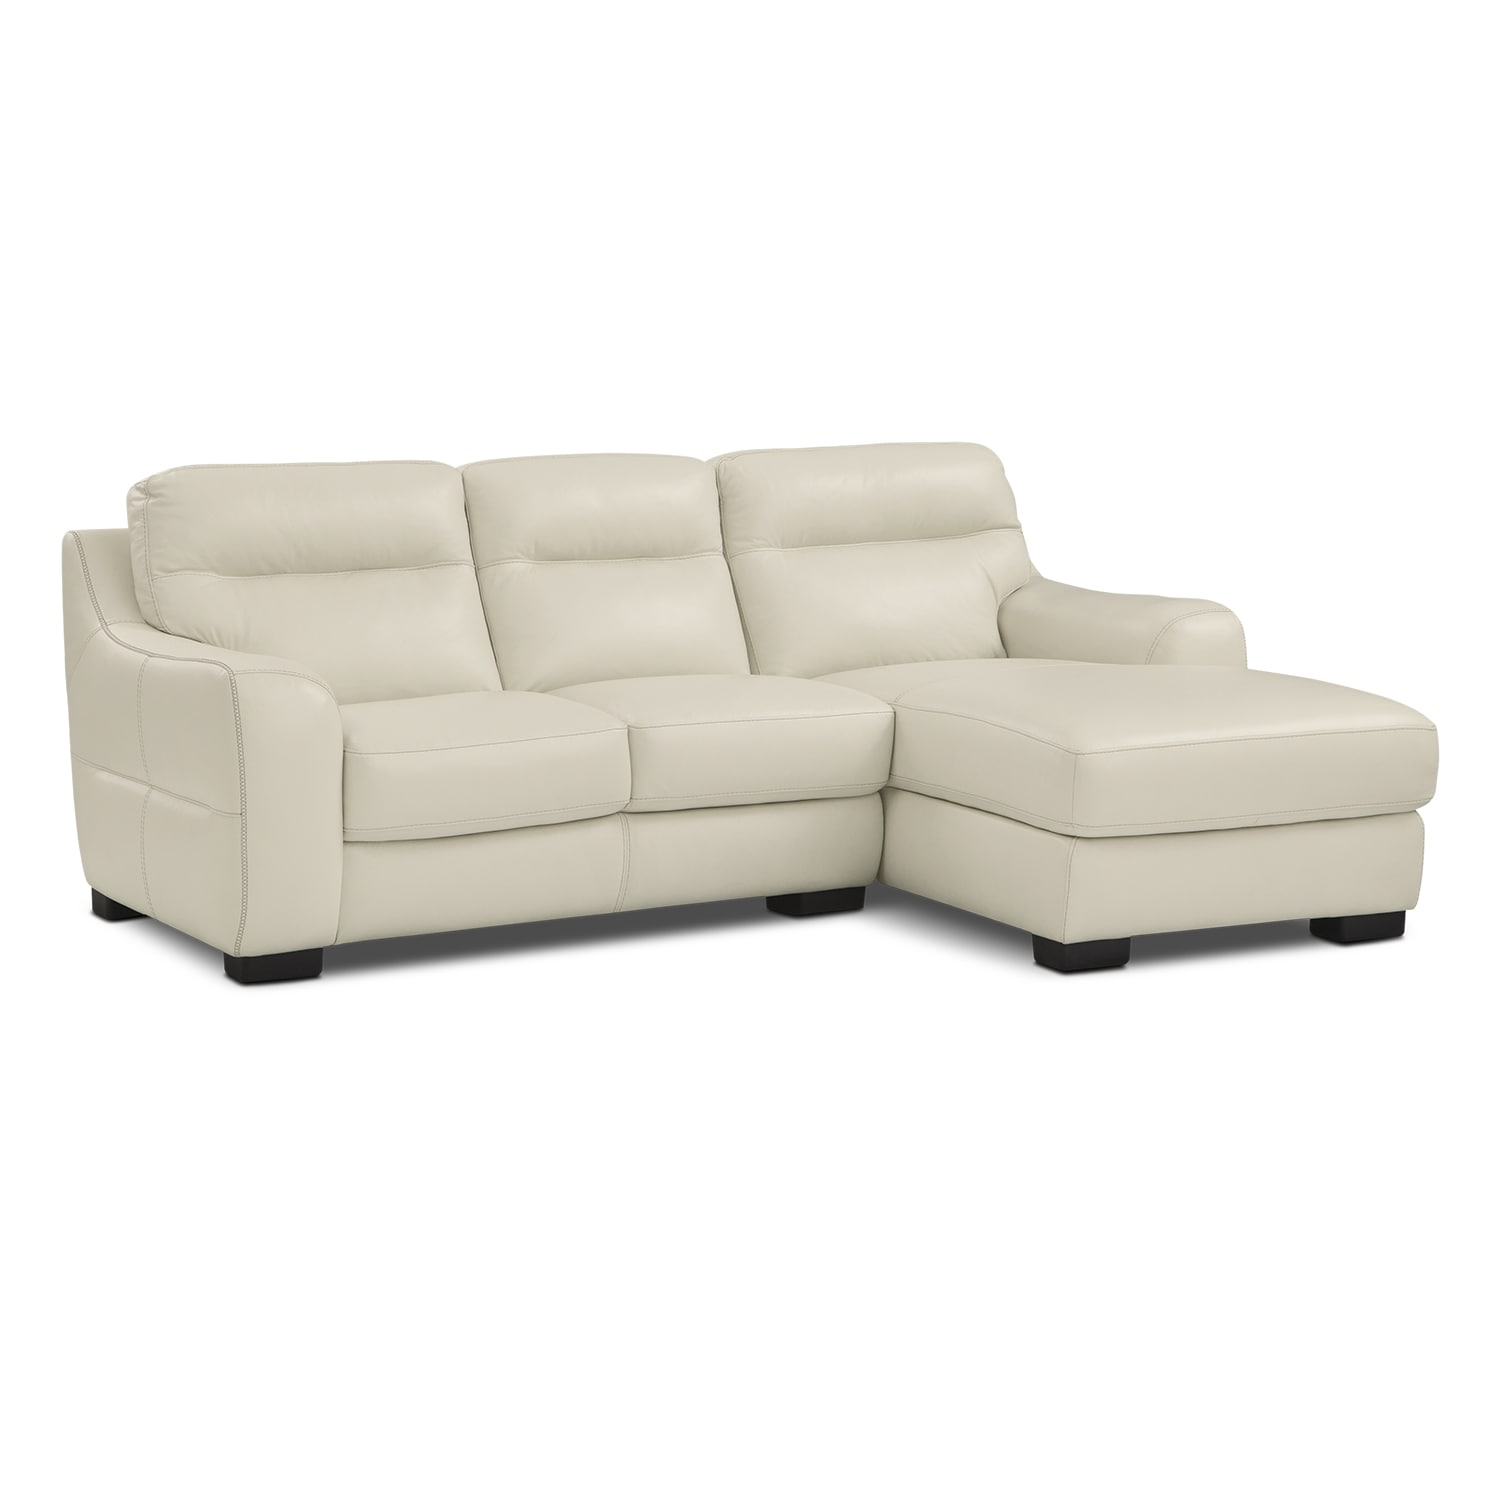 Rocco Snow 2 Pc. Right-Facing Chaise Sectional